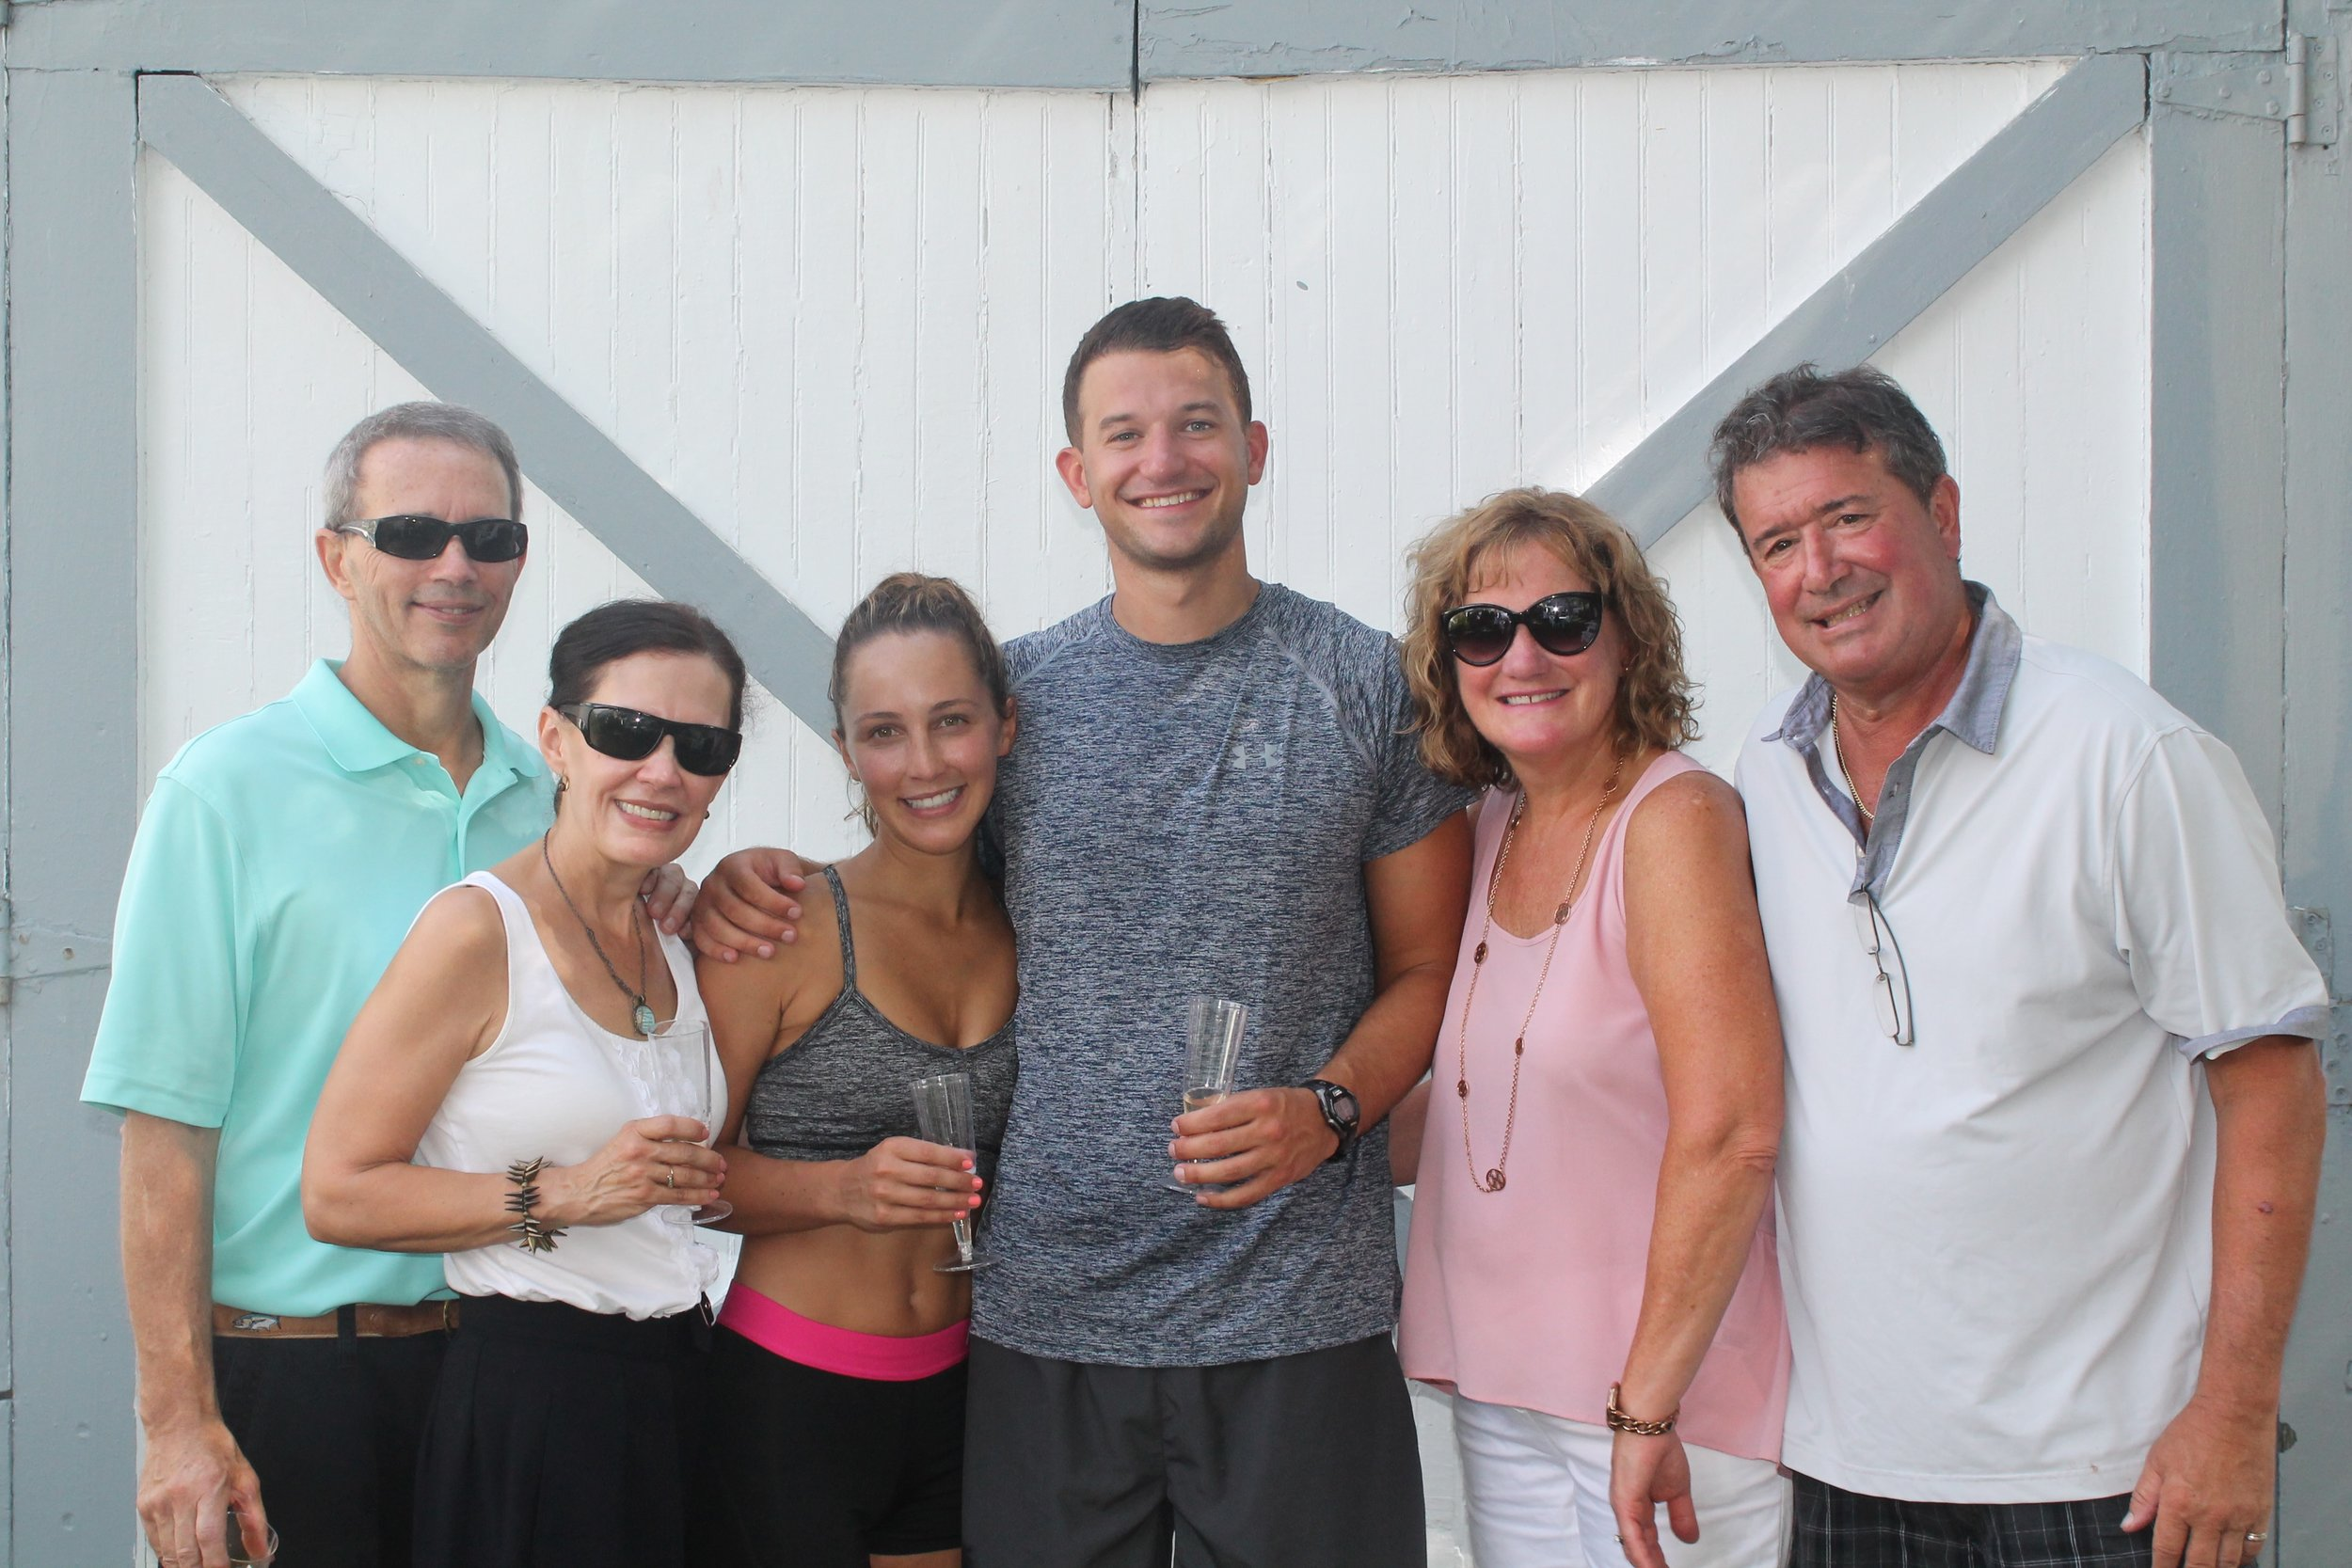 The Sperduto's & The Allman's after the proposal celebrating our soon-to-be new family